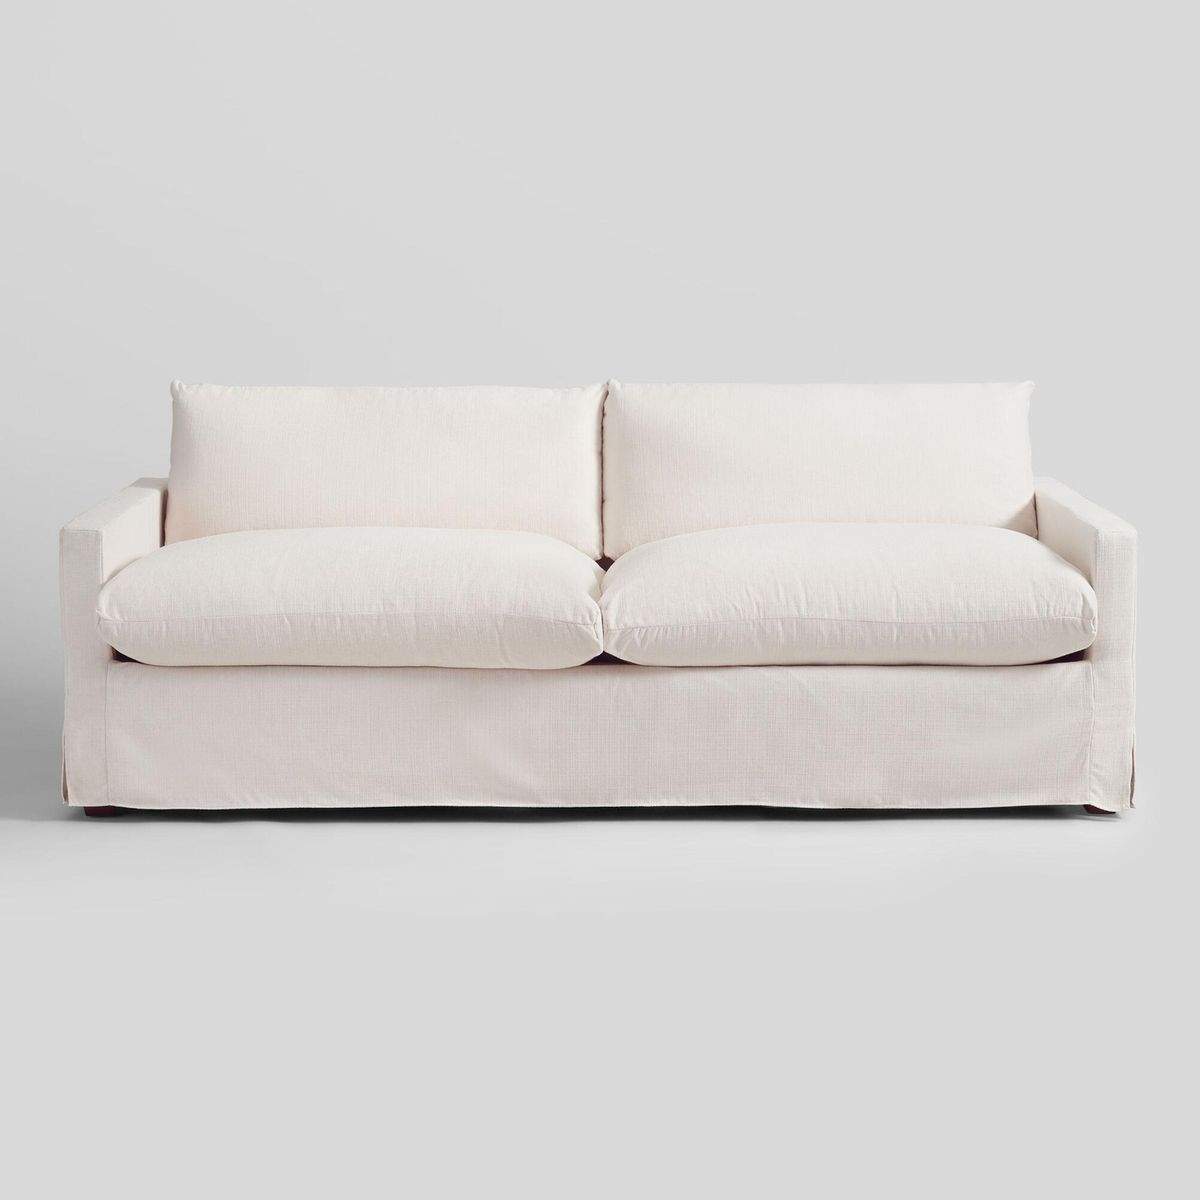 The Best Cheap Couches Under $1,000 (Plus A Few Under $700)   The Strategist   New York Magazine